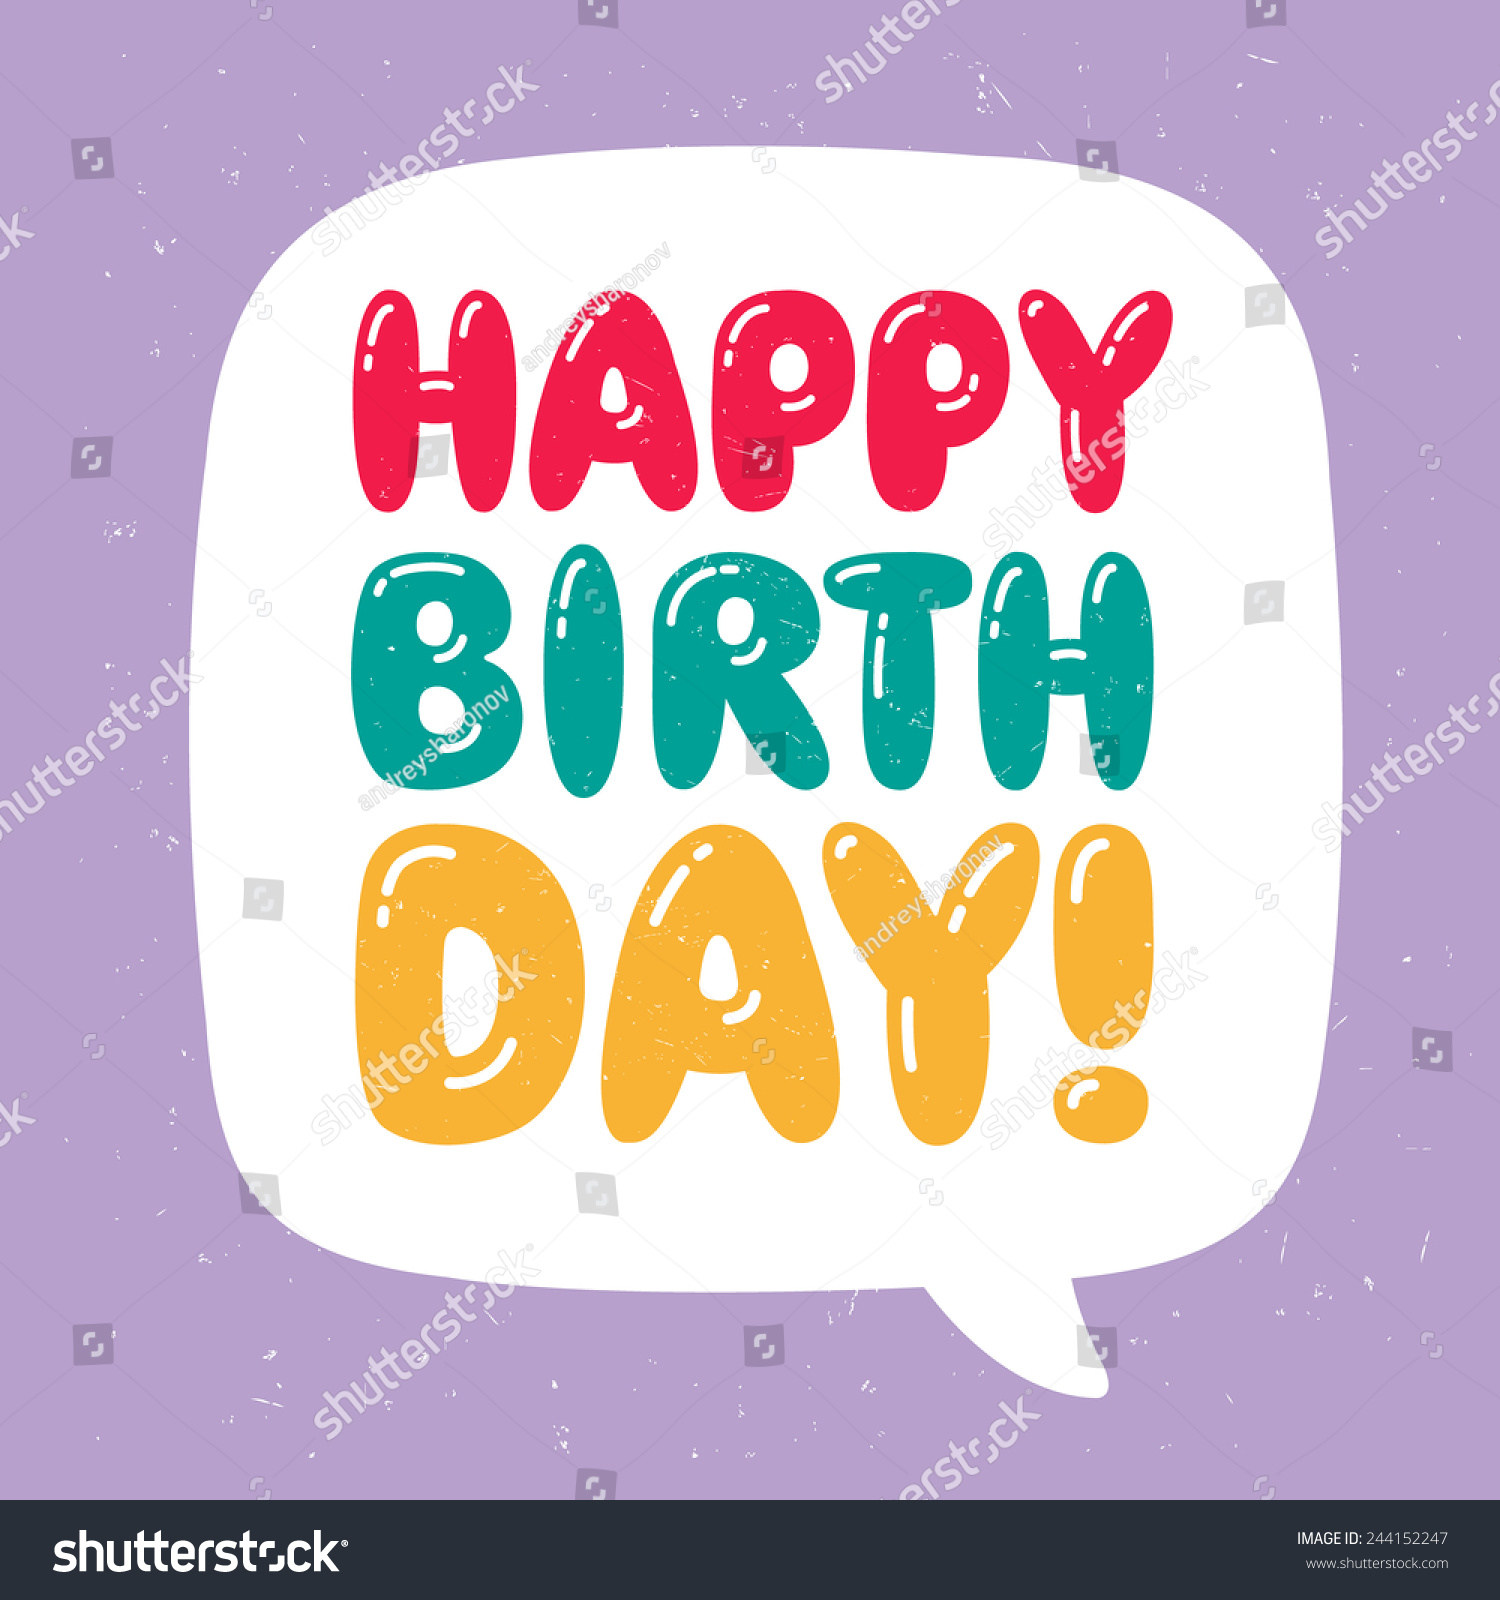 Happy birthday greeting card stock vector 244152247 shutterstock happy birthday greeting card kristyandbryce Images